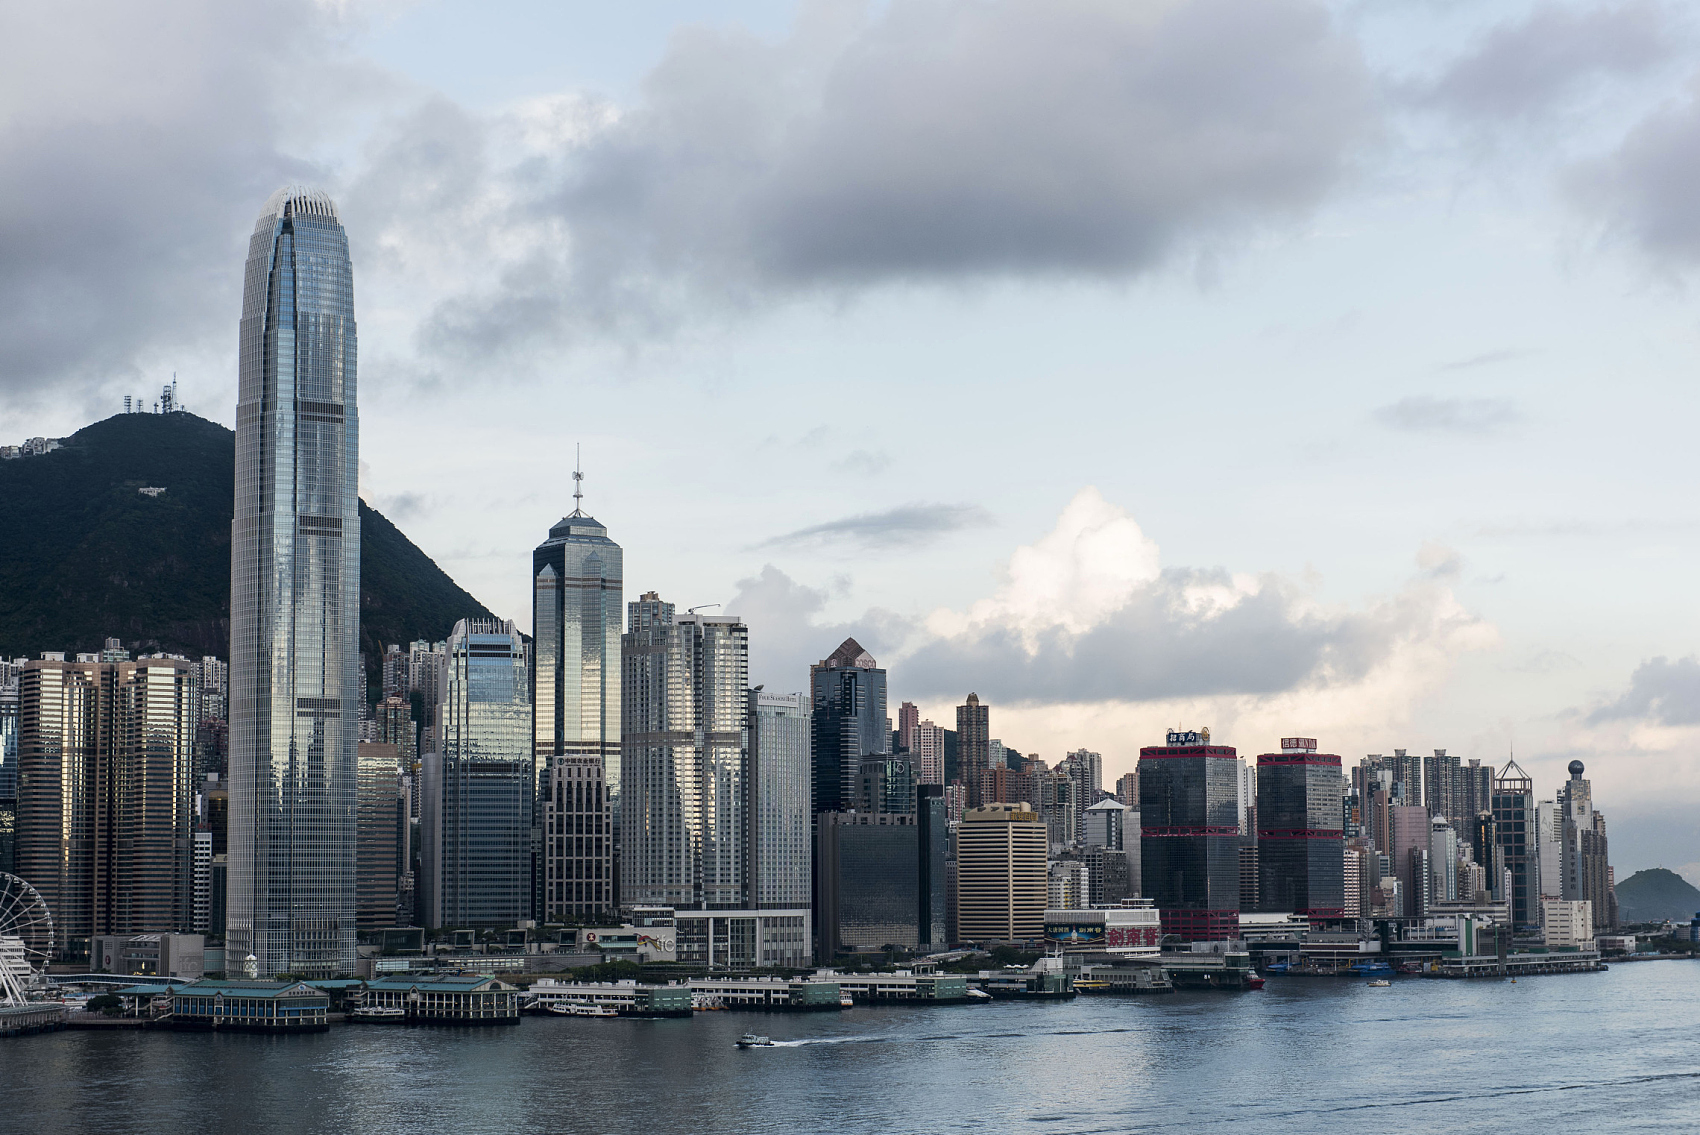 Hong Kong economy declines 9 pct in Q2